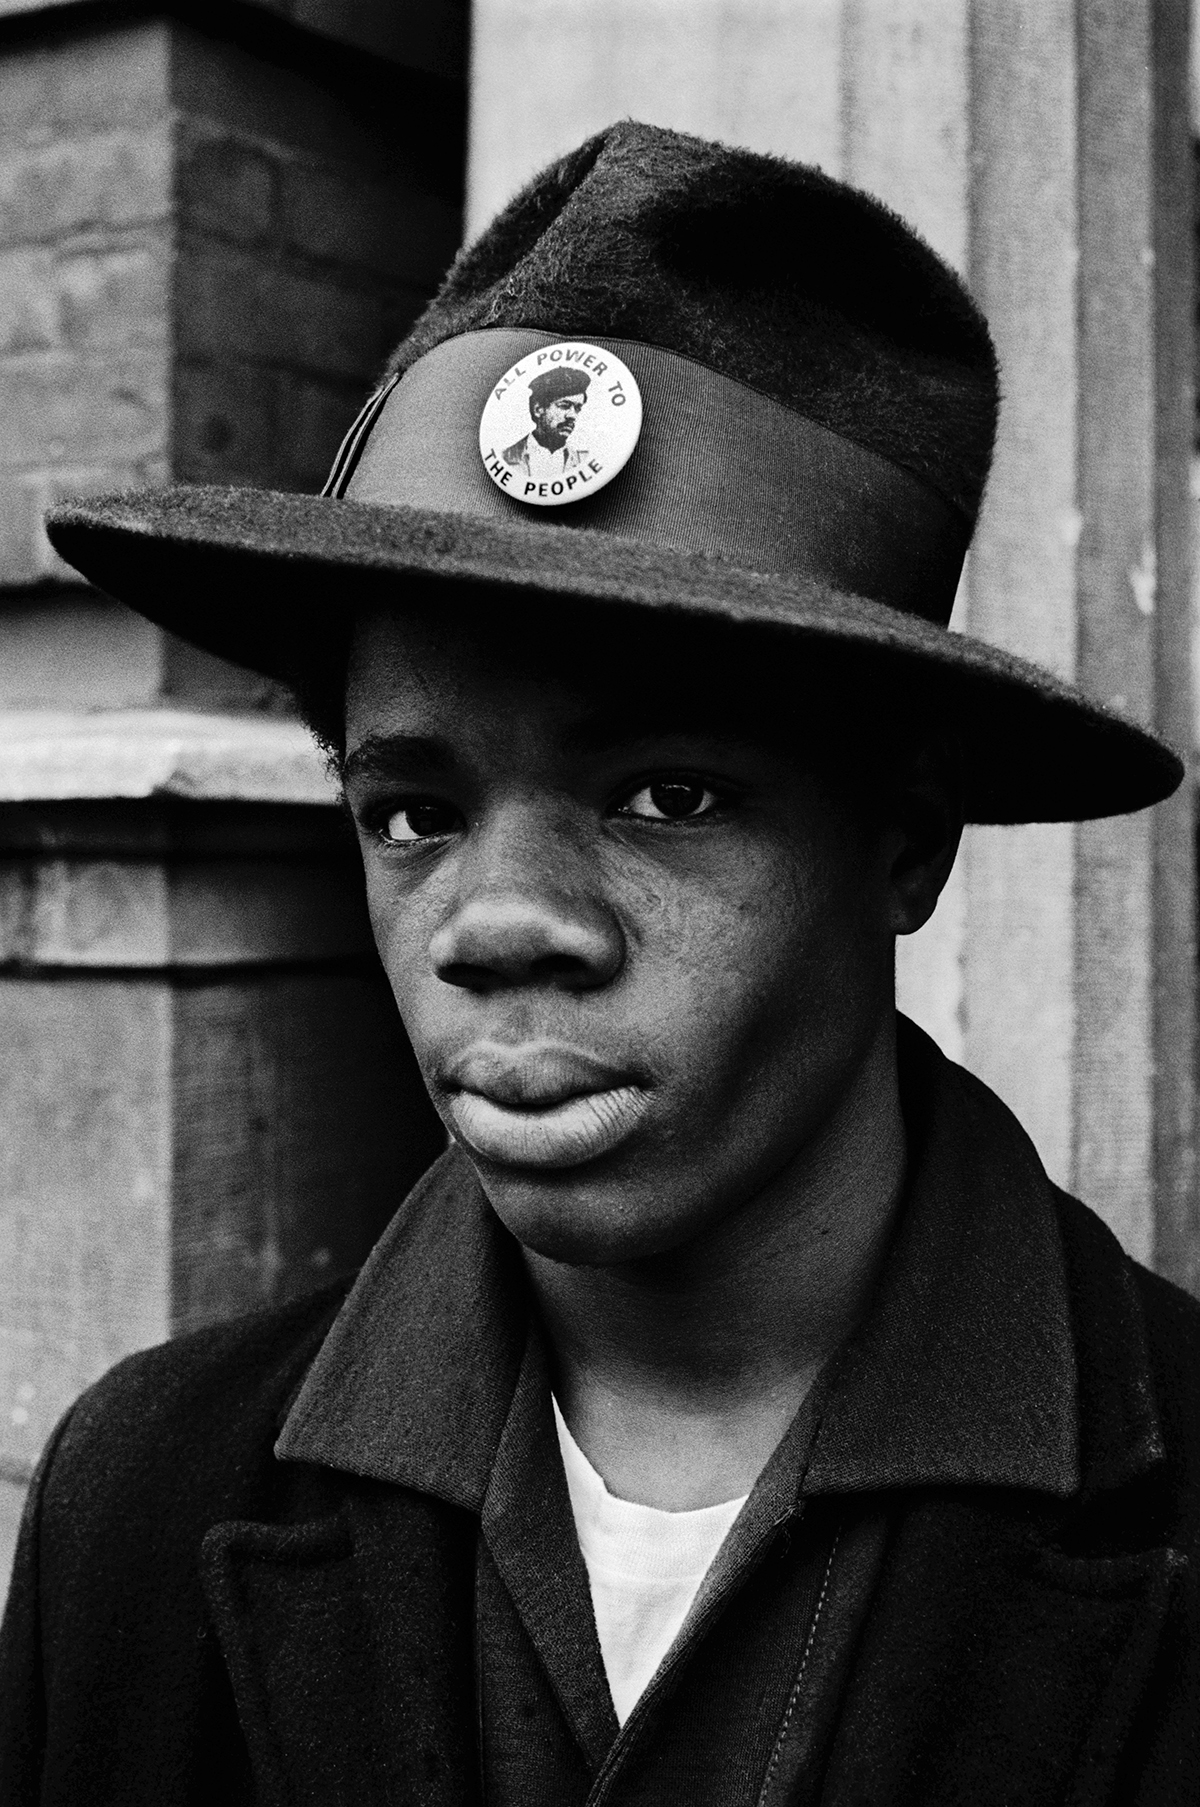 1970 – Chicago, Illinois, USA. Adolescent portant un chapeau orné d'un pins de soutien à Bobby Seale © Stephen Shames. Courtesy Steven Kasher Gallery